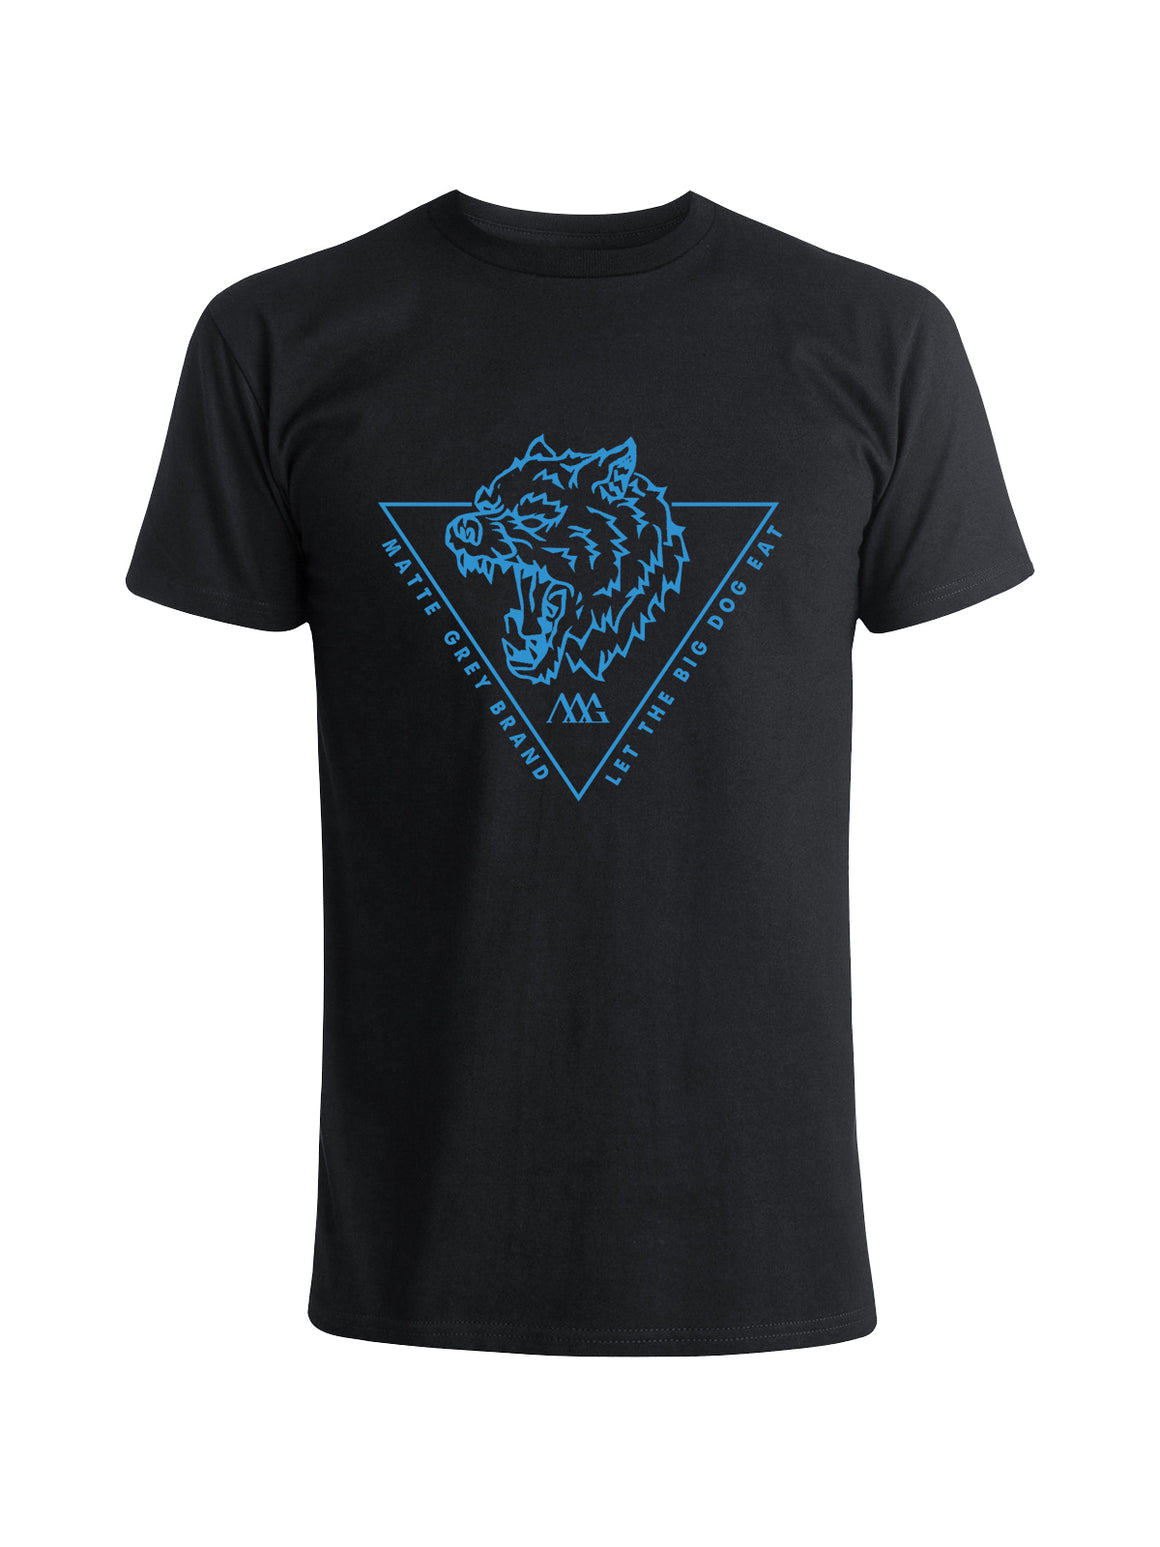 Big Dog Tri Tee Shirt - Black (Coastal Blue)